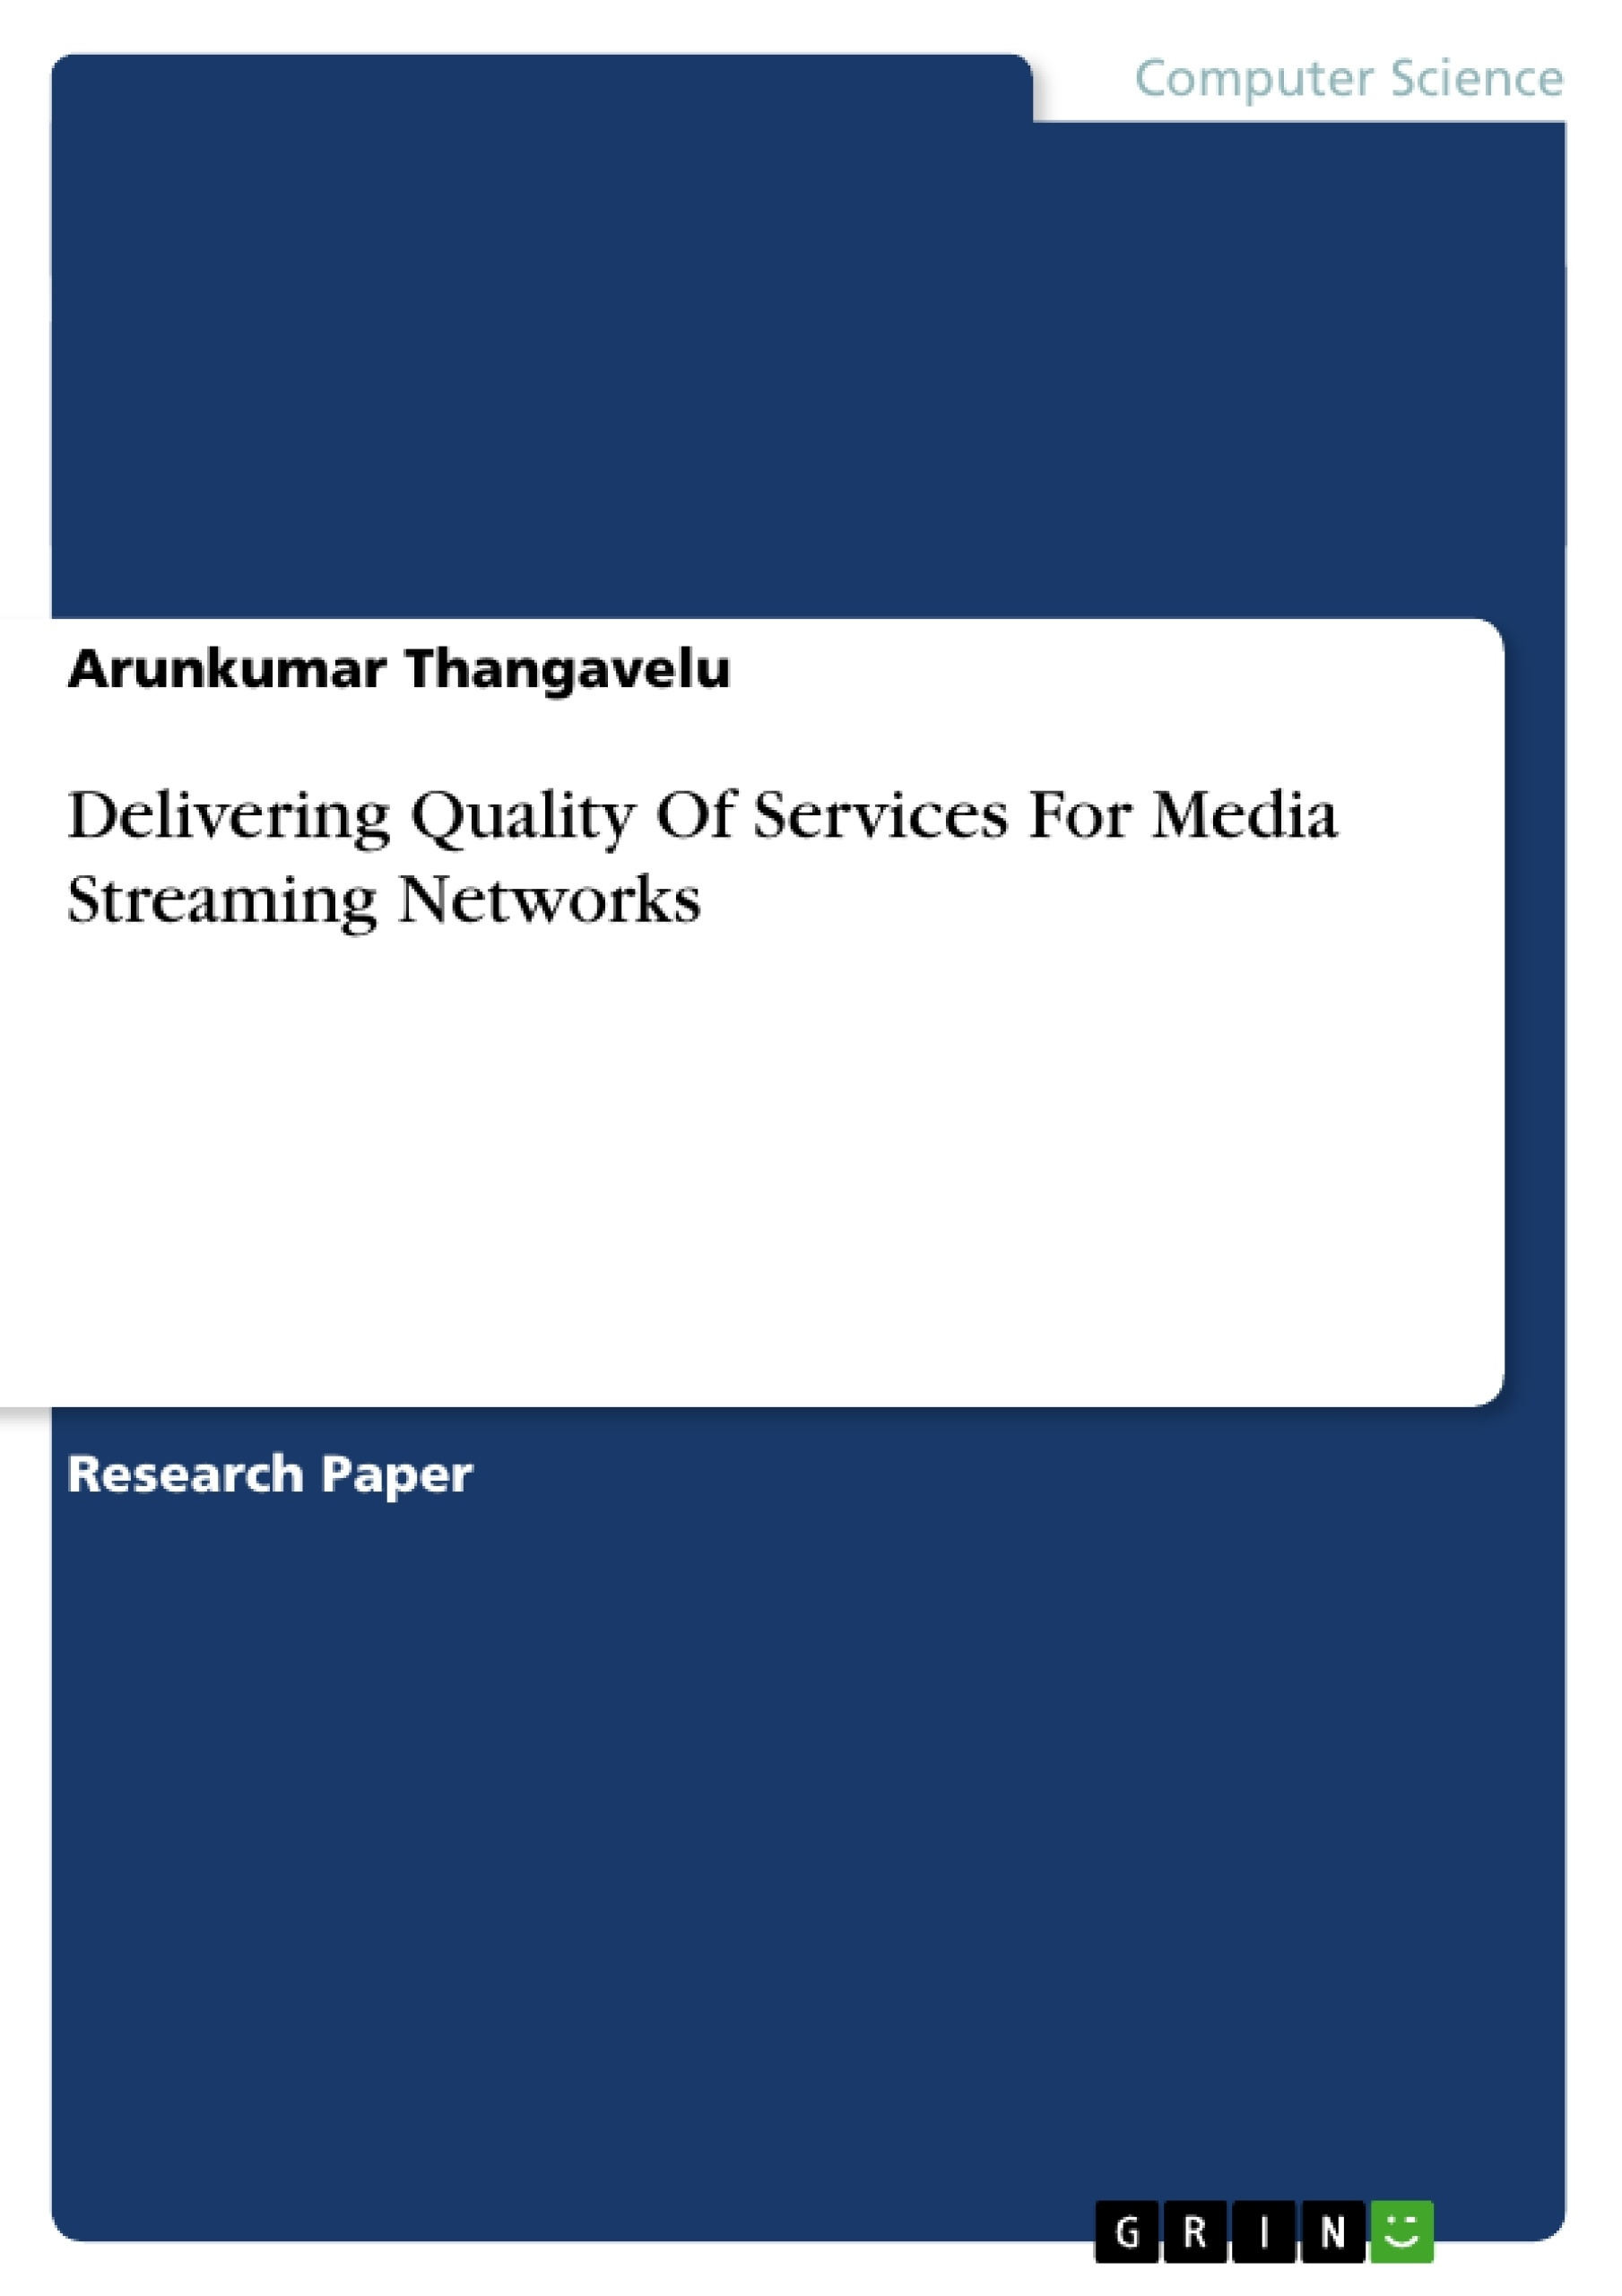 Title: Delivering Quality Of Services For Media Streaming Networks